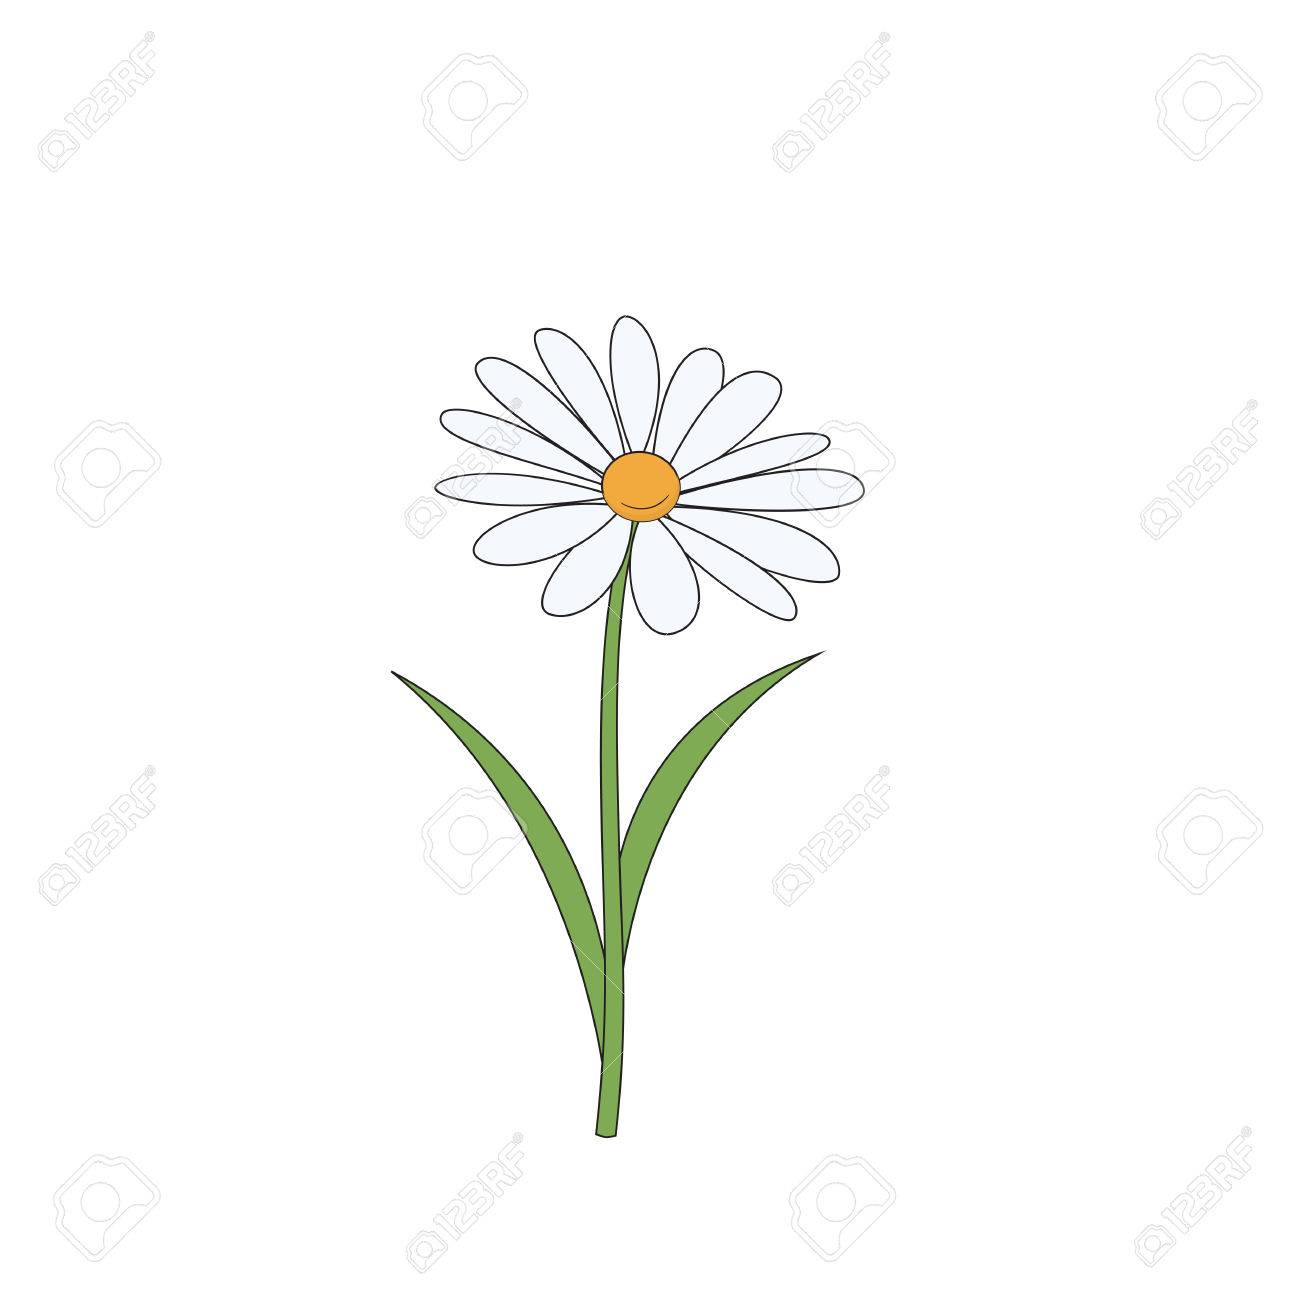 Cartoon daisy. Simple flower on white background. Vector illustration. Stock Vector - 76081580